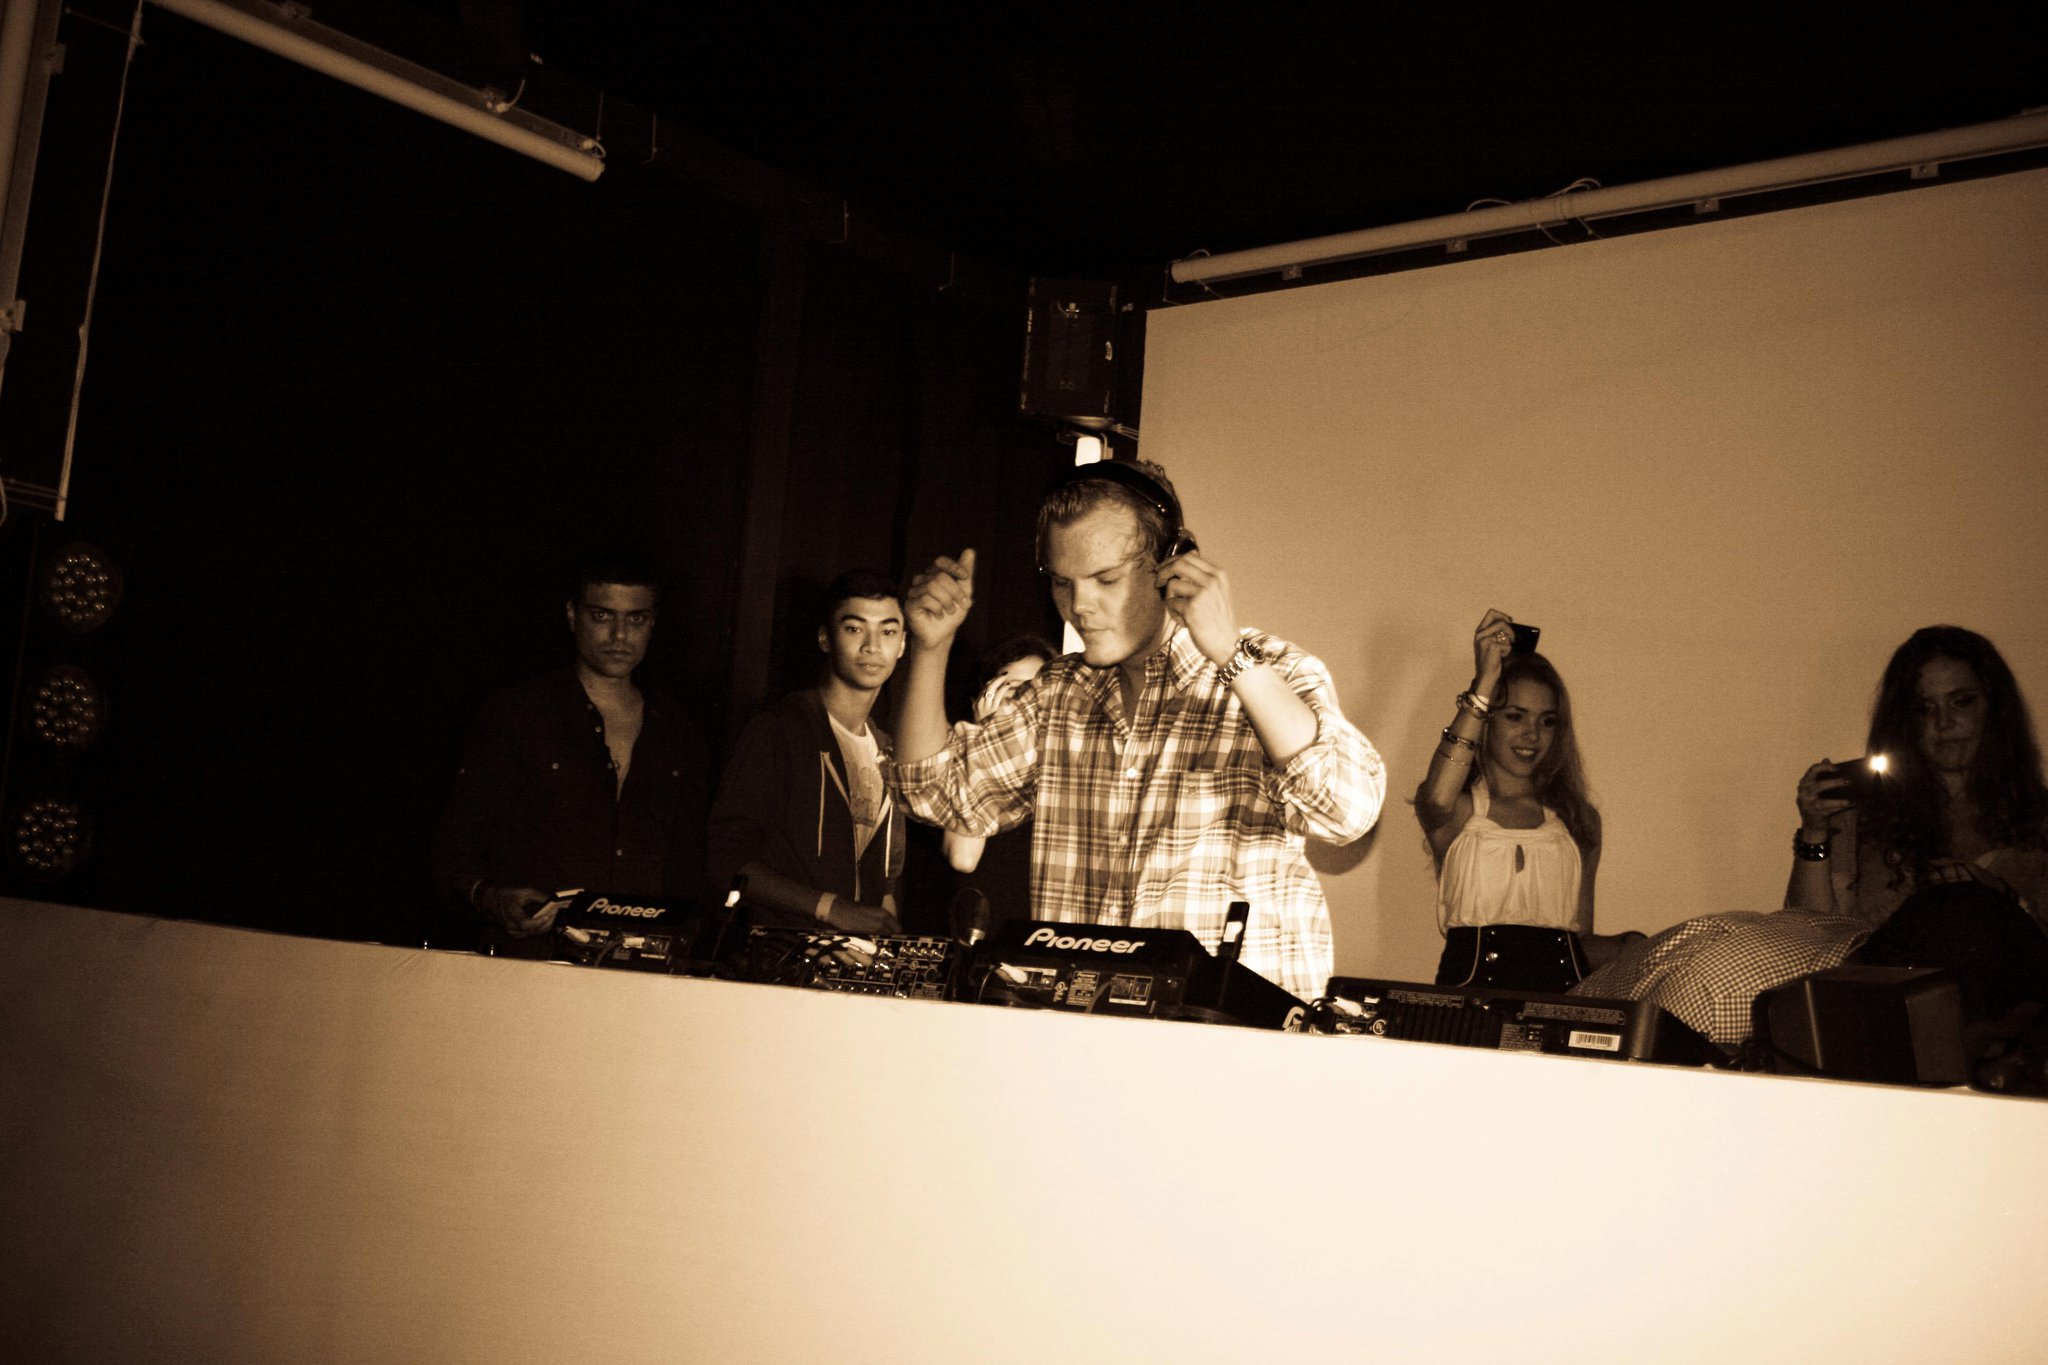 Avicii en concert en Haïti, 8 juillet 2011./ Photo : Blackpalm Productions ( Facebook)